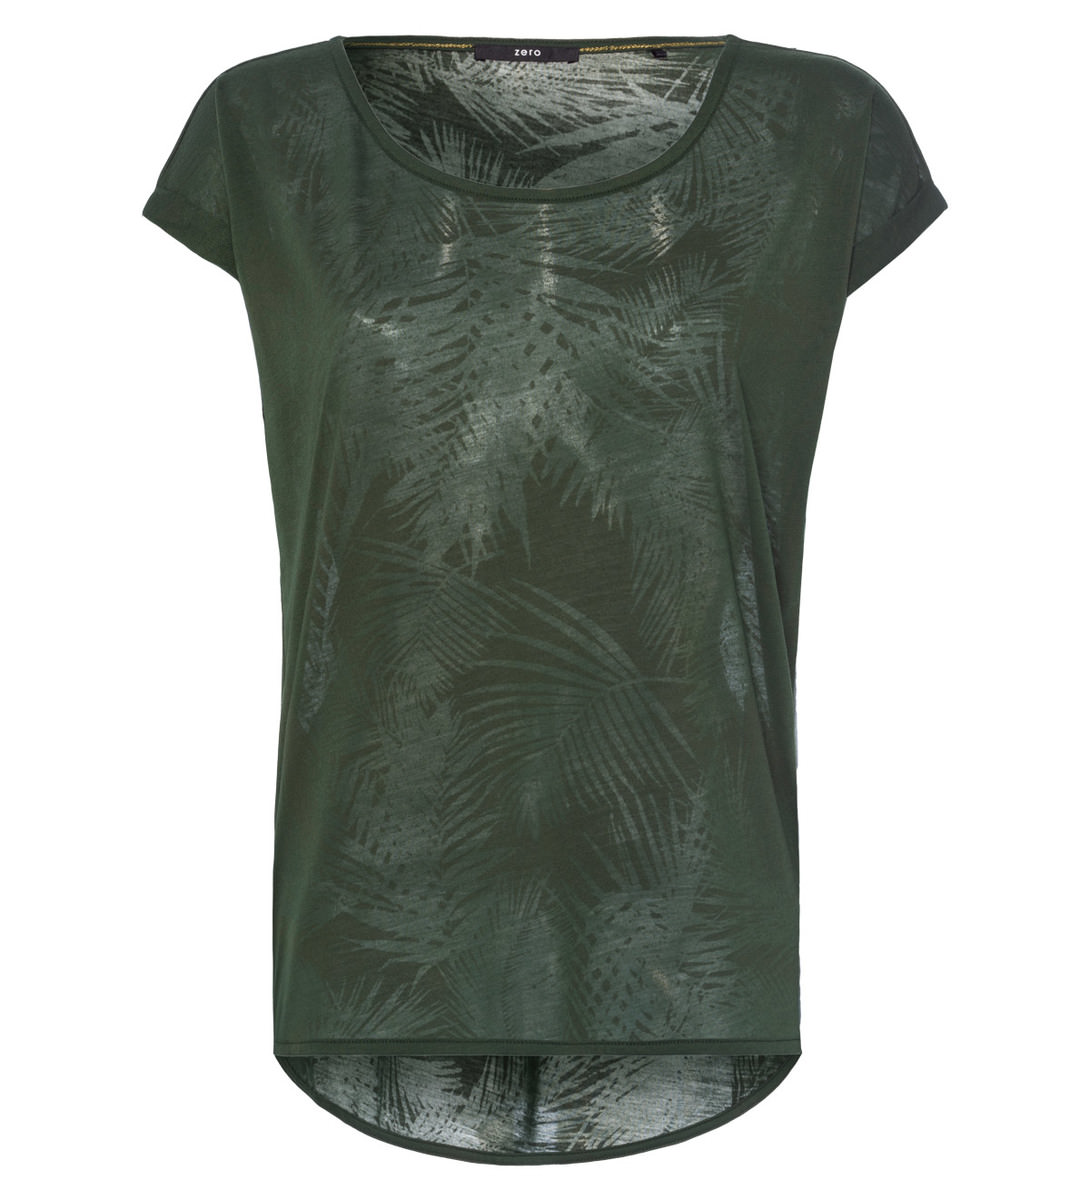 T-Shirt mit Ausbrenner Muster in cypress olive